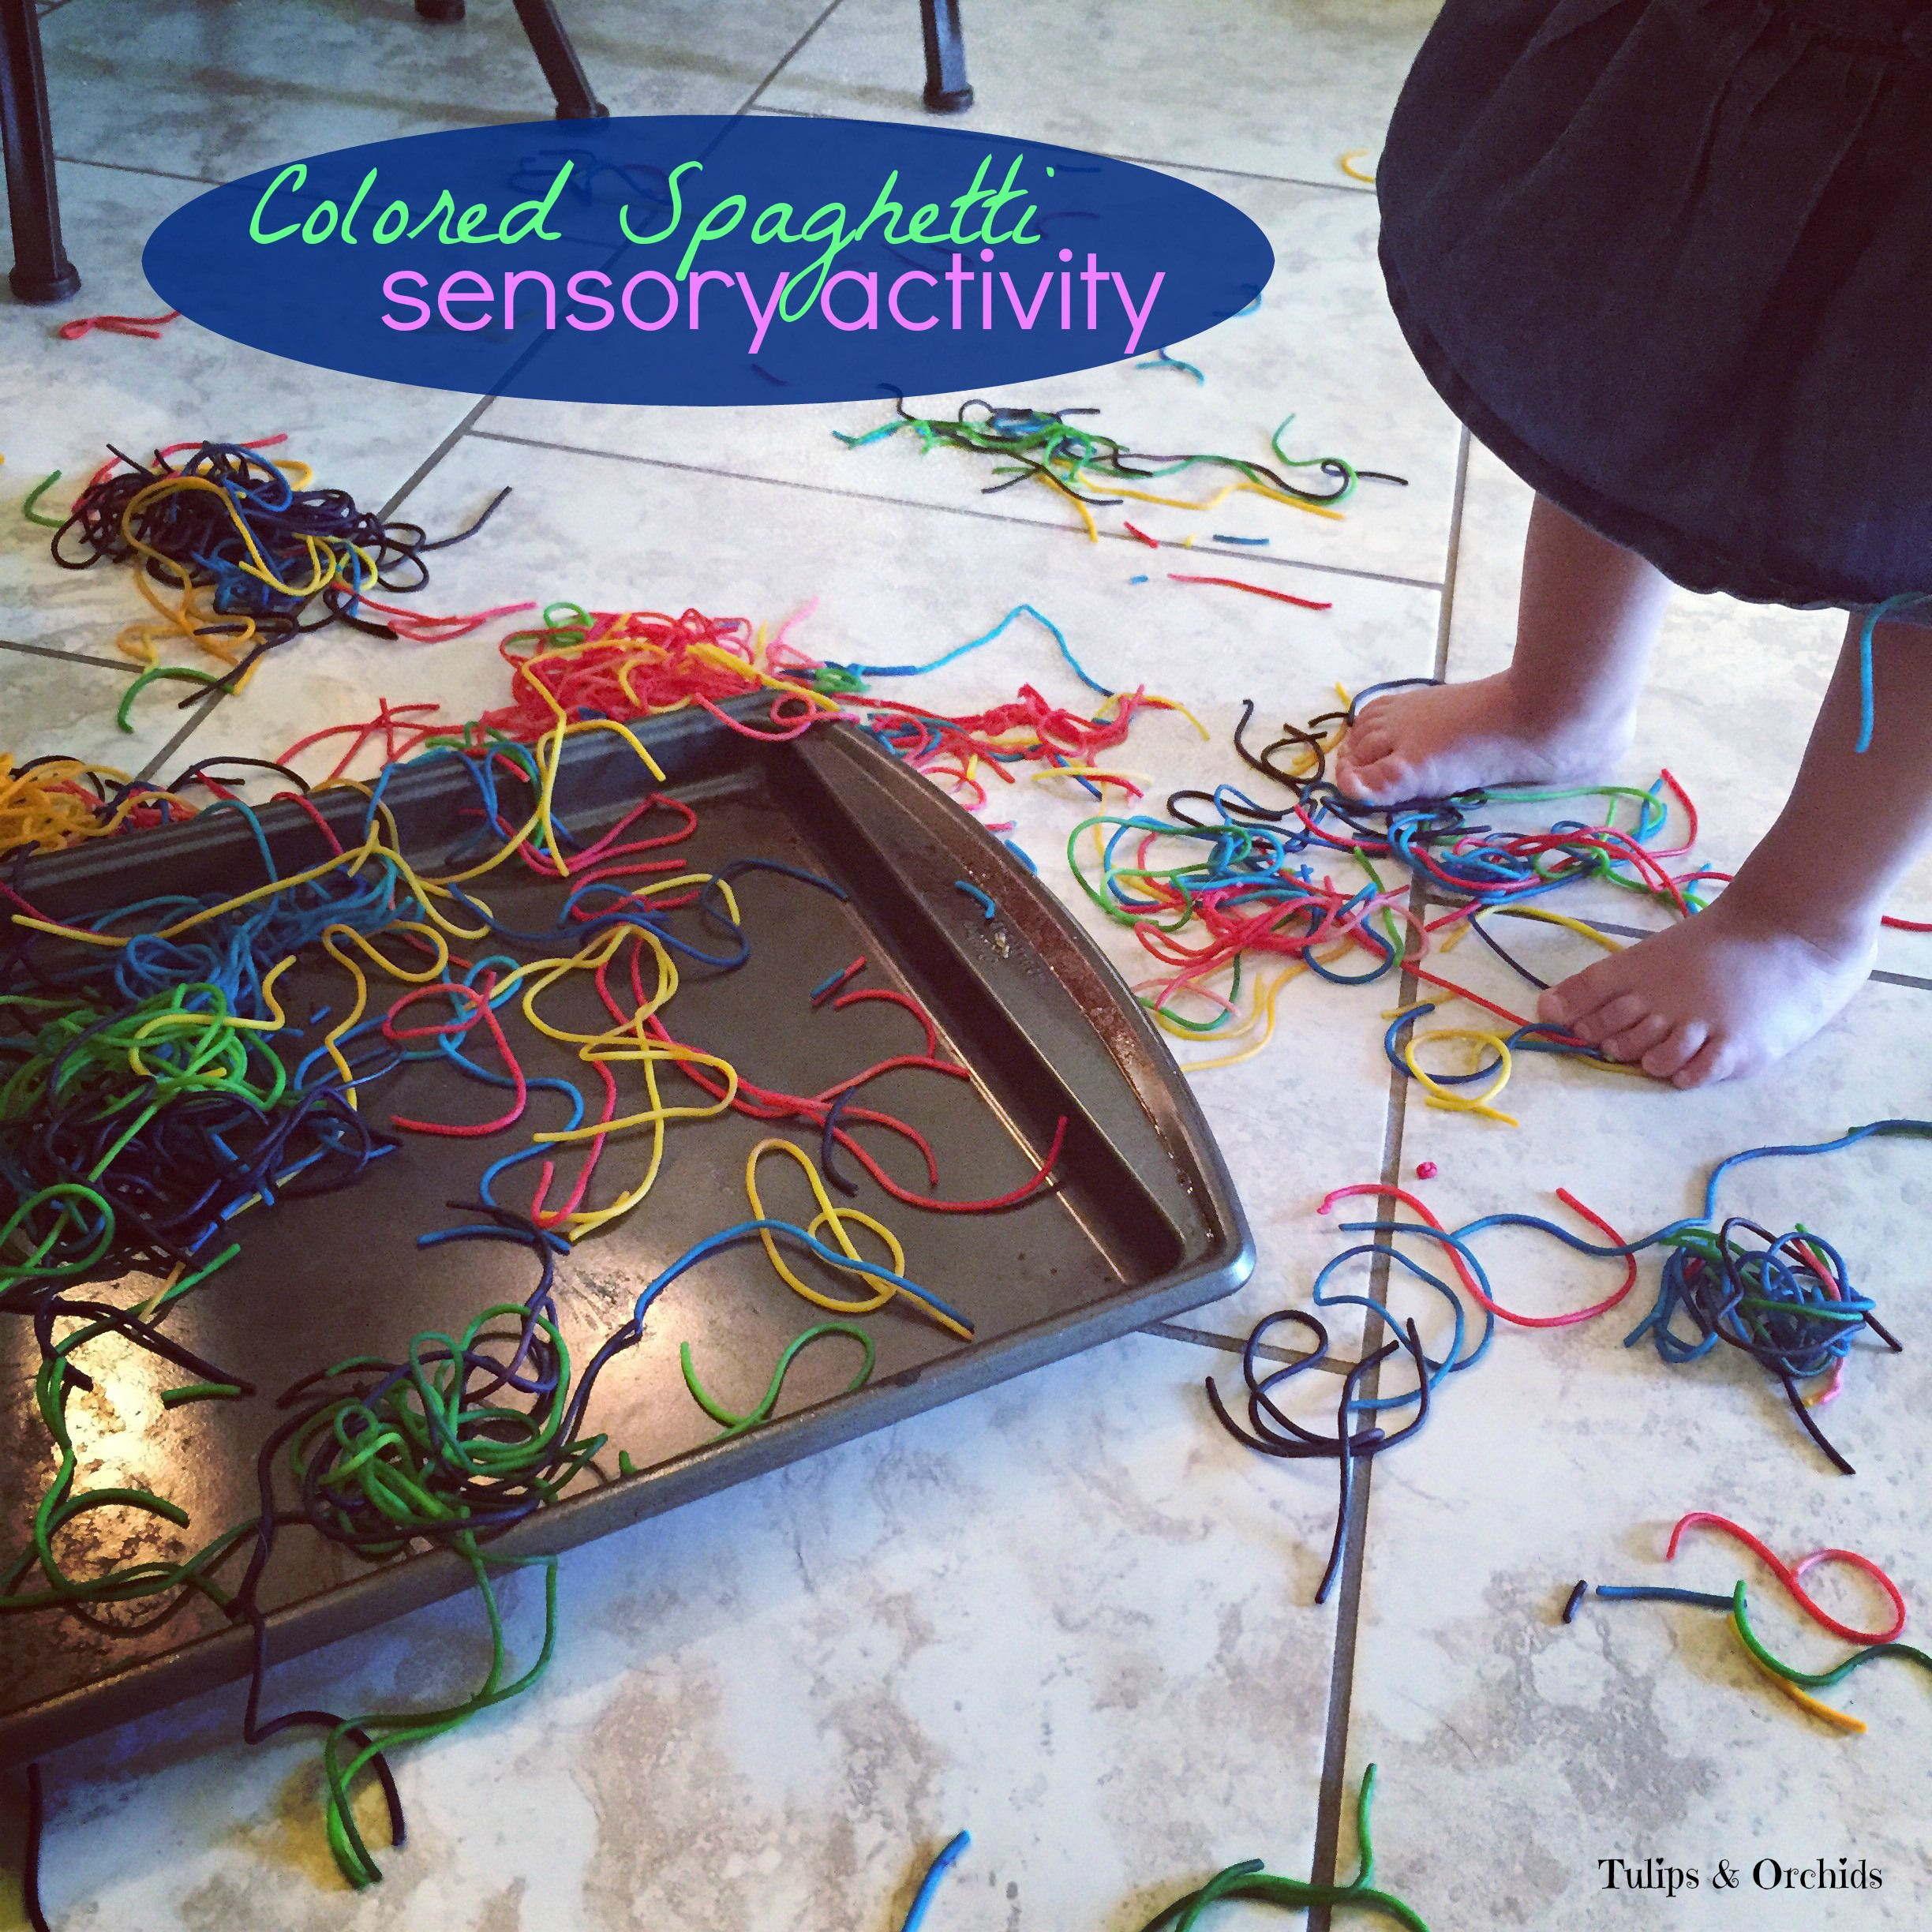 Activities for colors for toddlers - Utilize This Colored Spaghetti Activity To Teach Toddlers About Textures And Colors And Children About